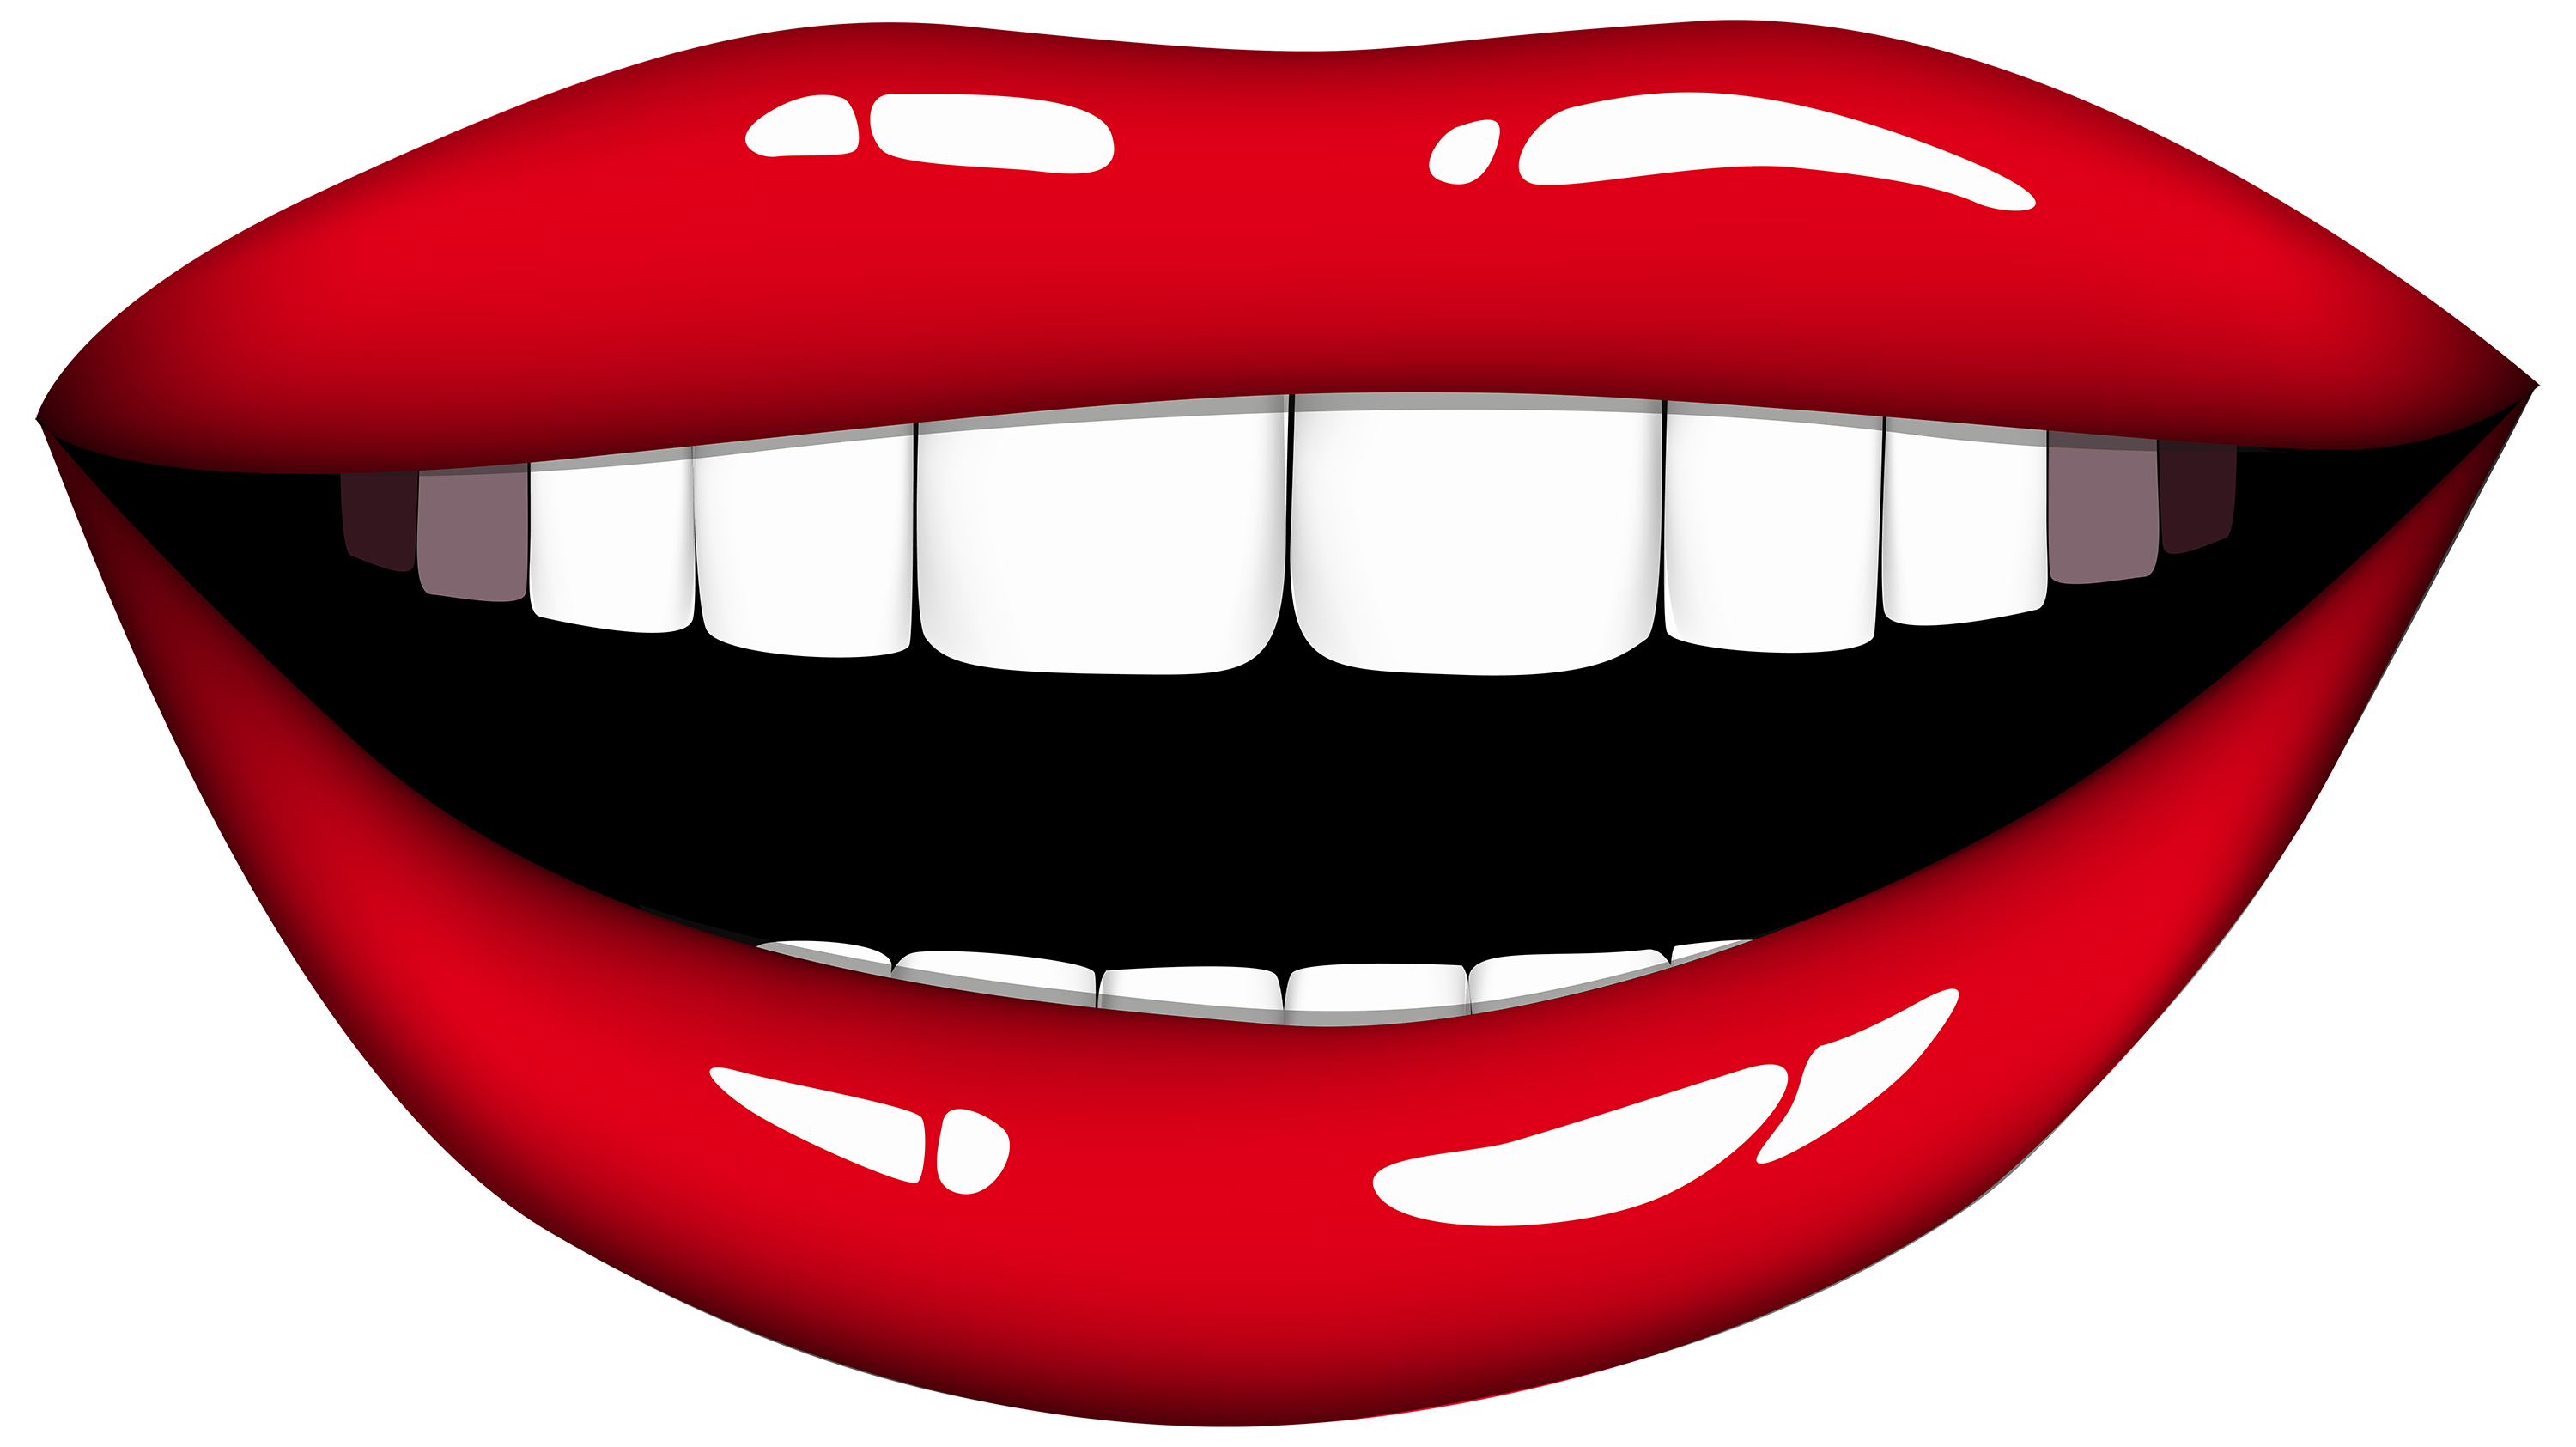 Clipart Mouth u0026 Mouth Clip Art Images - ClipartALL pluspng.com - Mouth Talking PNG HD